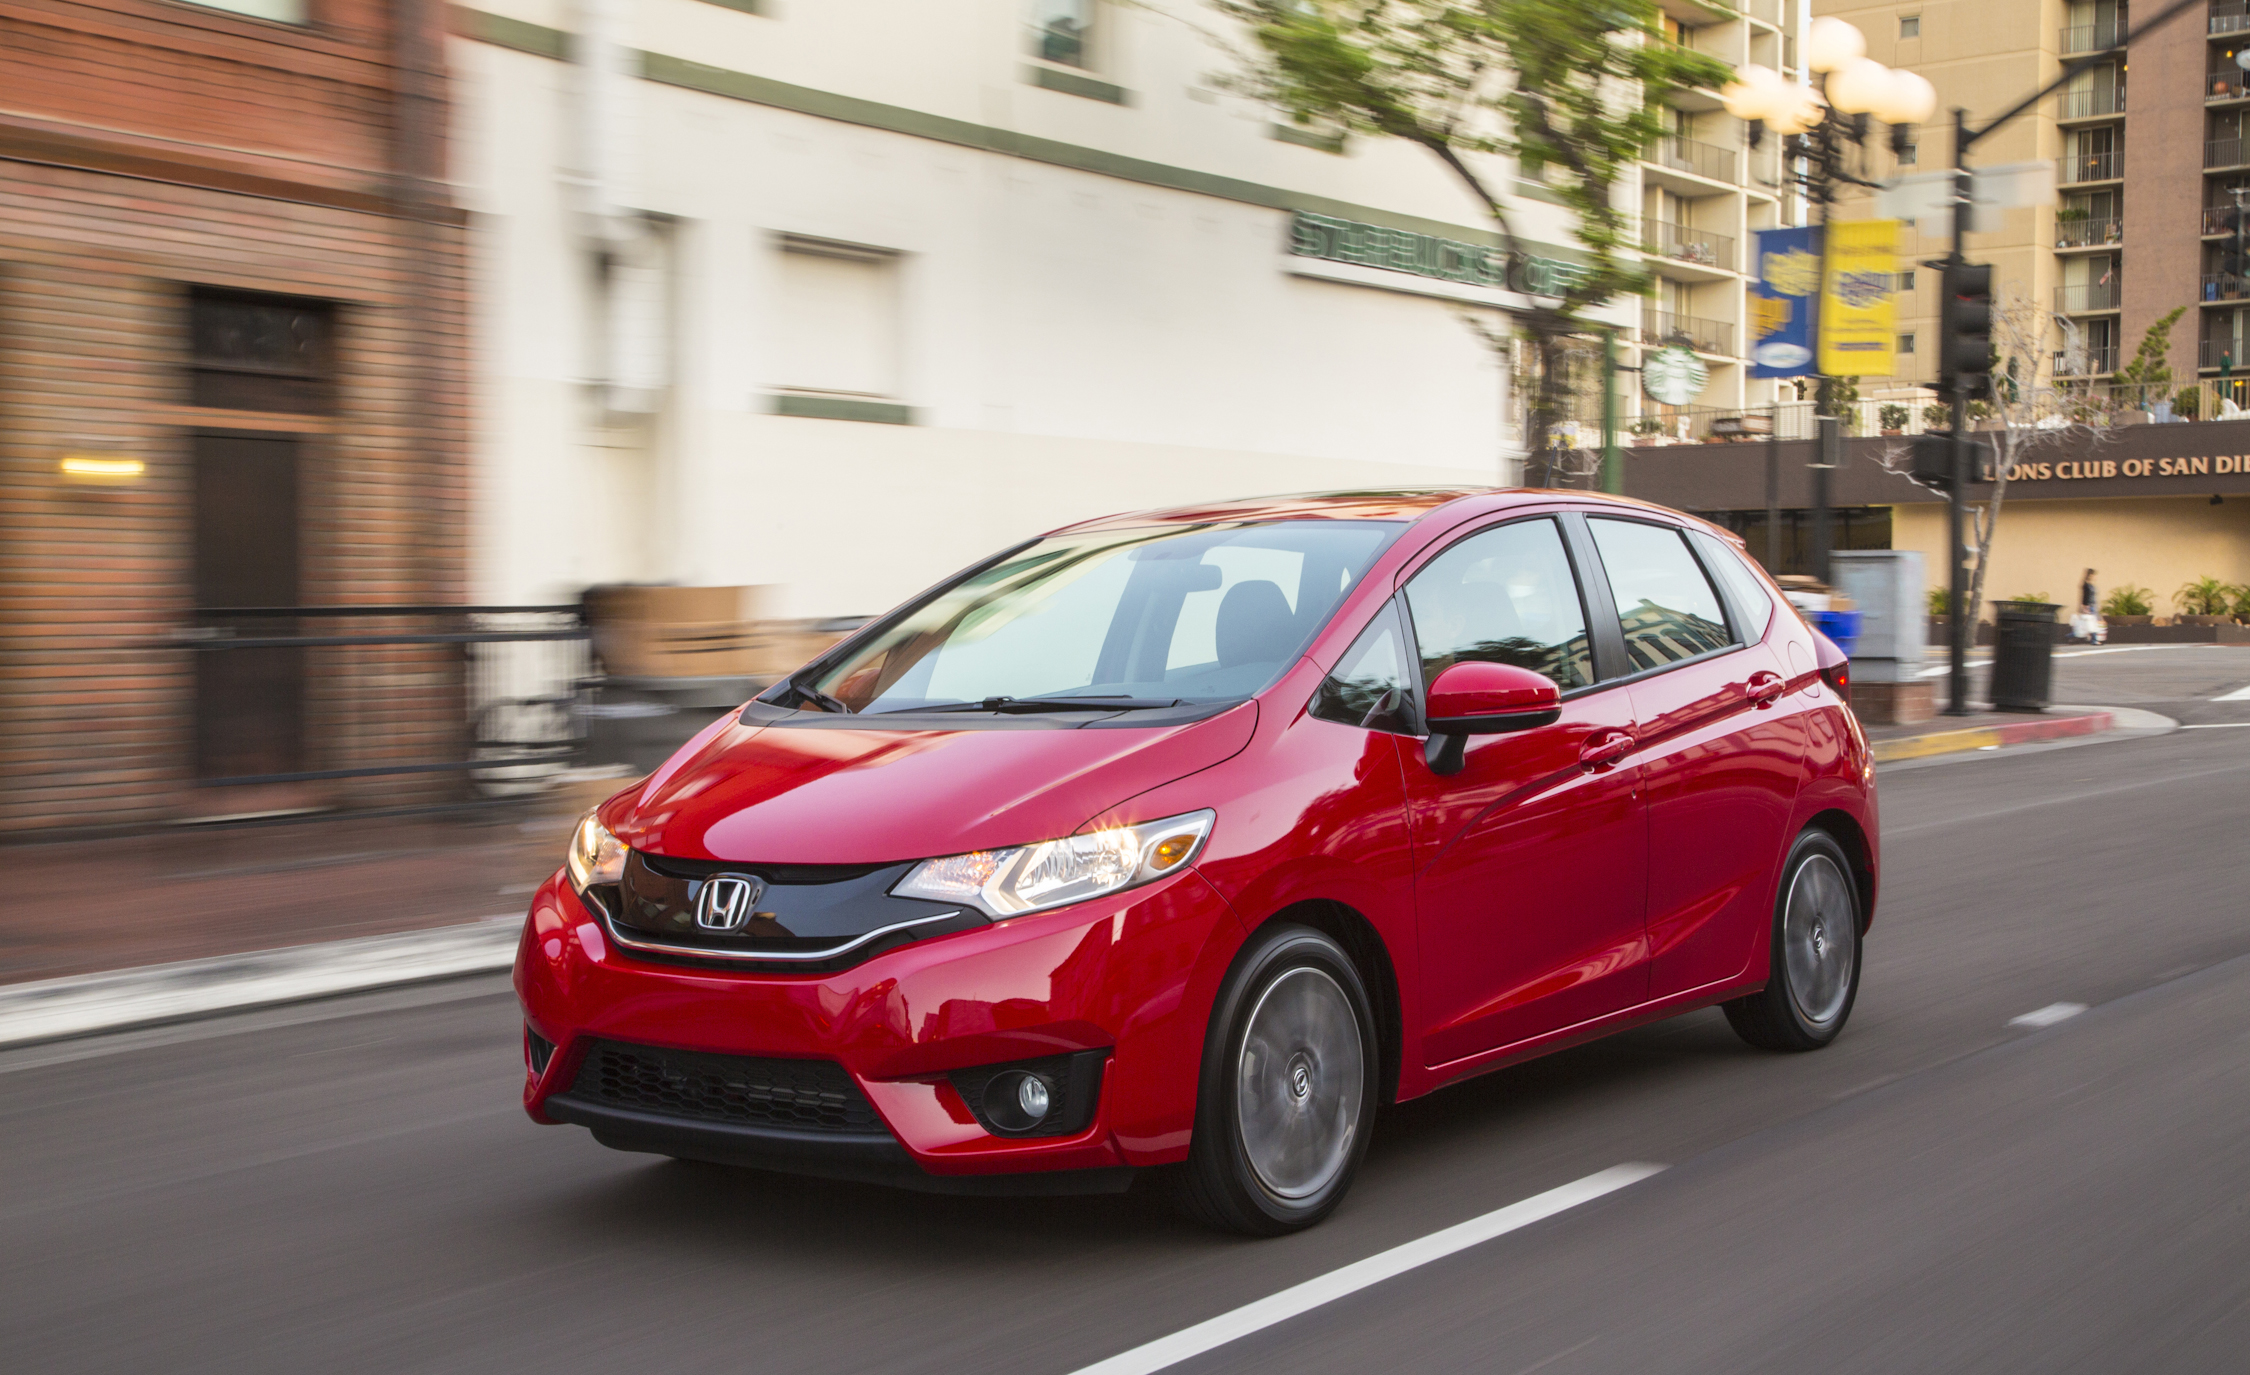 2015 Honda Fit (View 11 of 16)